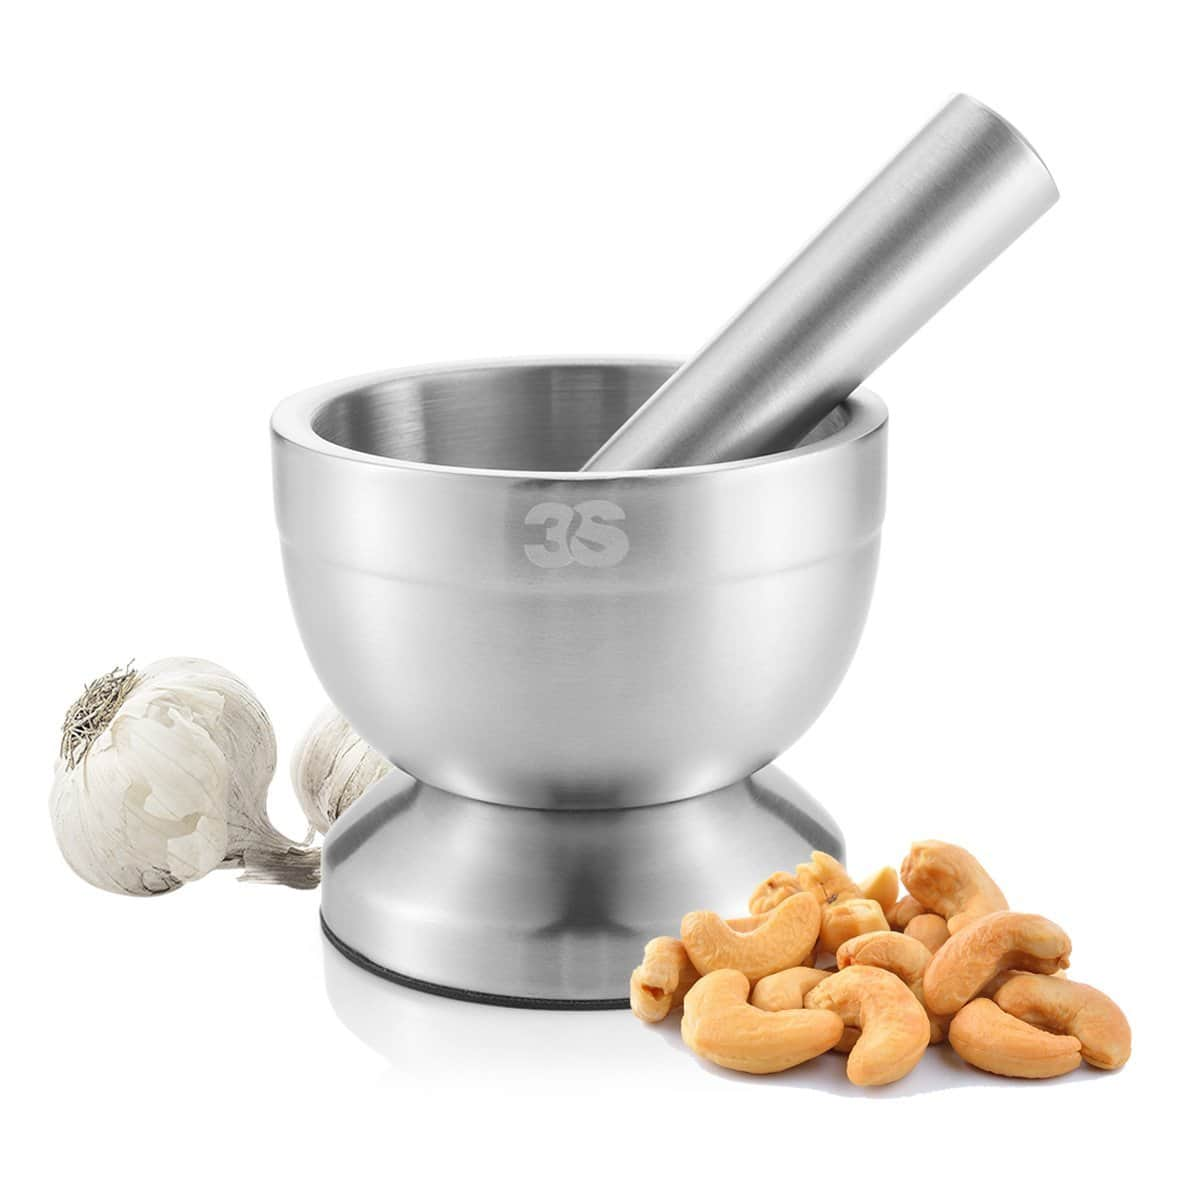 3S Stainless Steel Spice Grinder / Mortar and Pestle Set $9.87